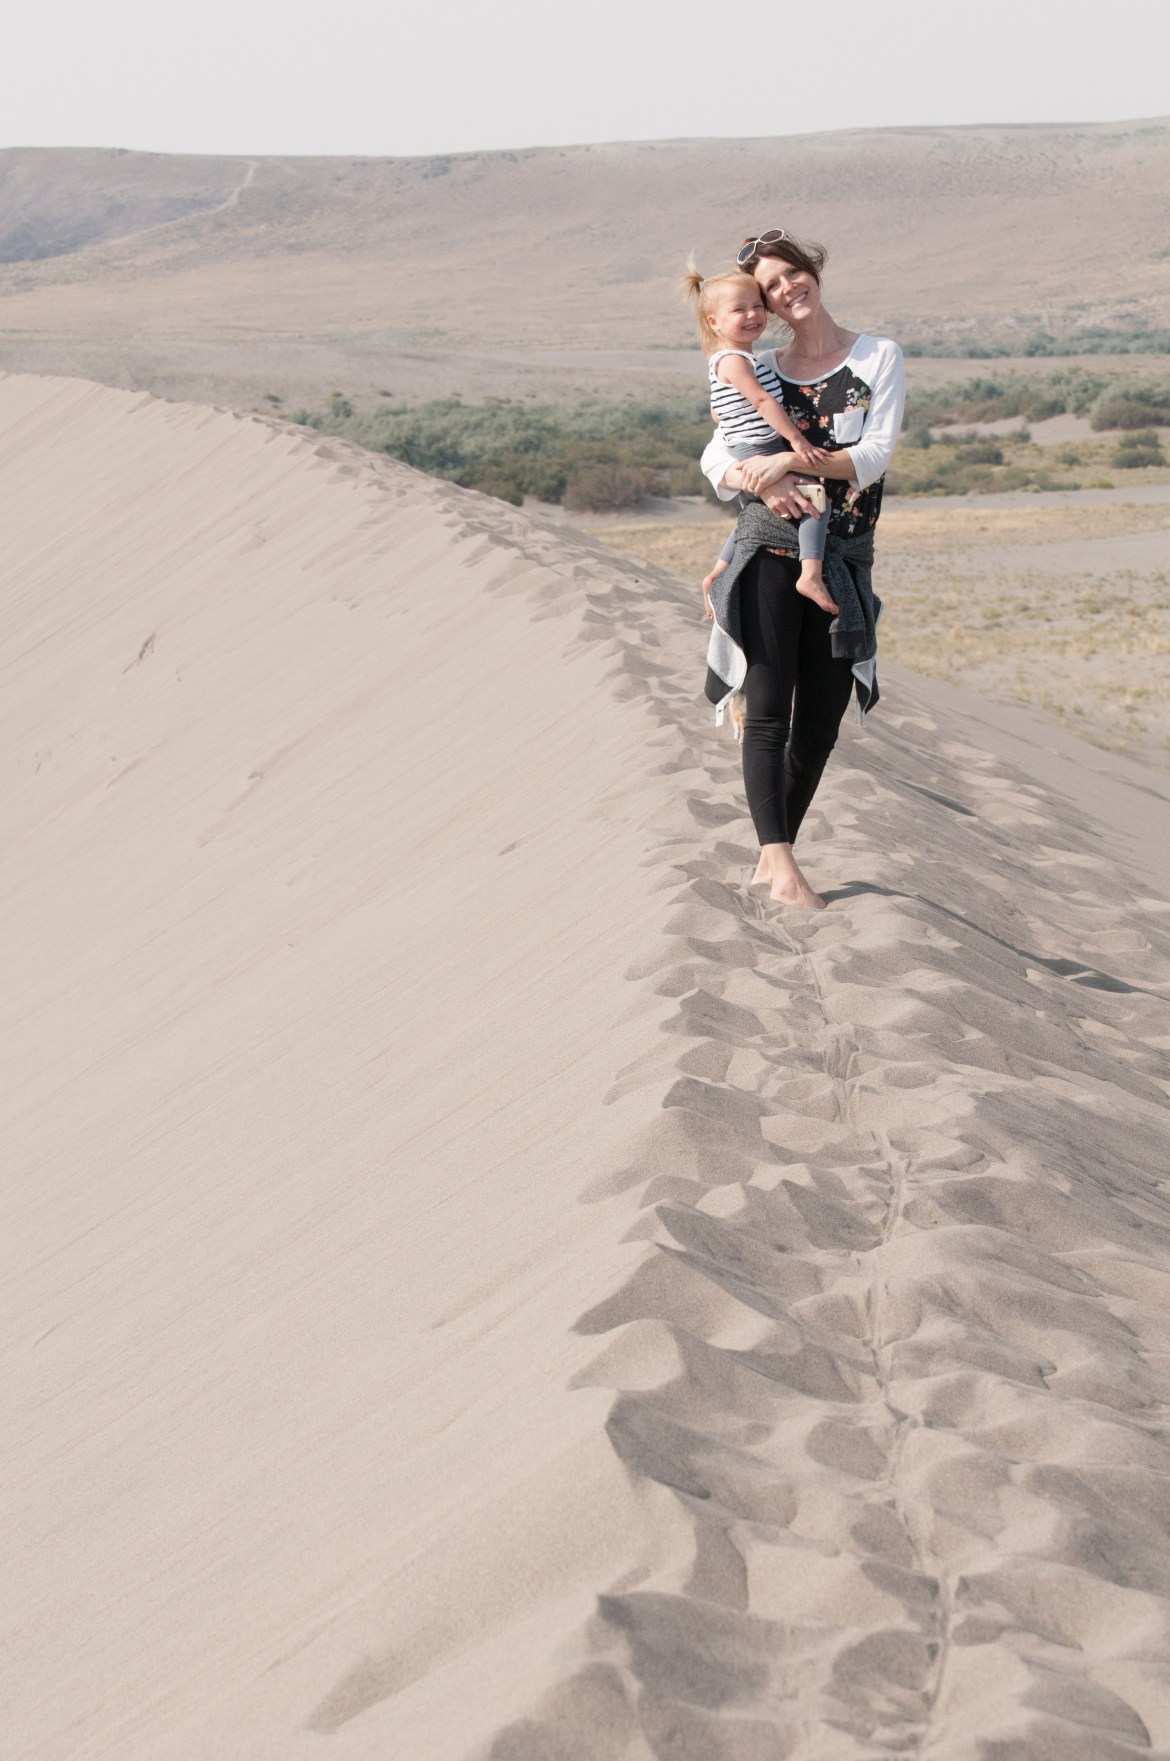 A young girl and her mother stand atop a large sand dune at Southwest Idaho's Bruneau Sand Dunes State Park. The dunes are the largest free-standing sand dunes in North America.